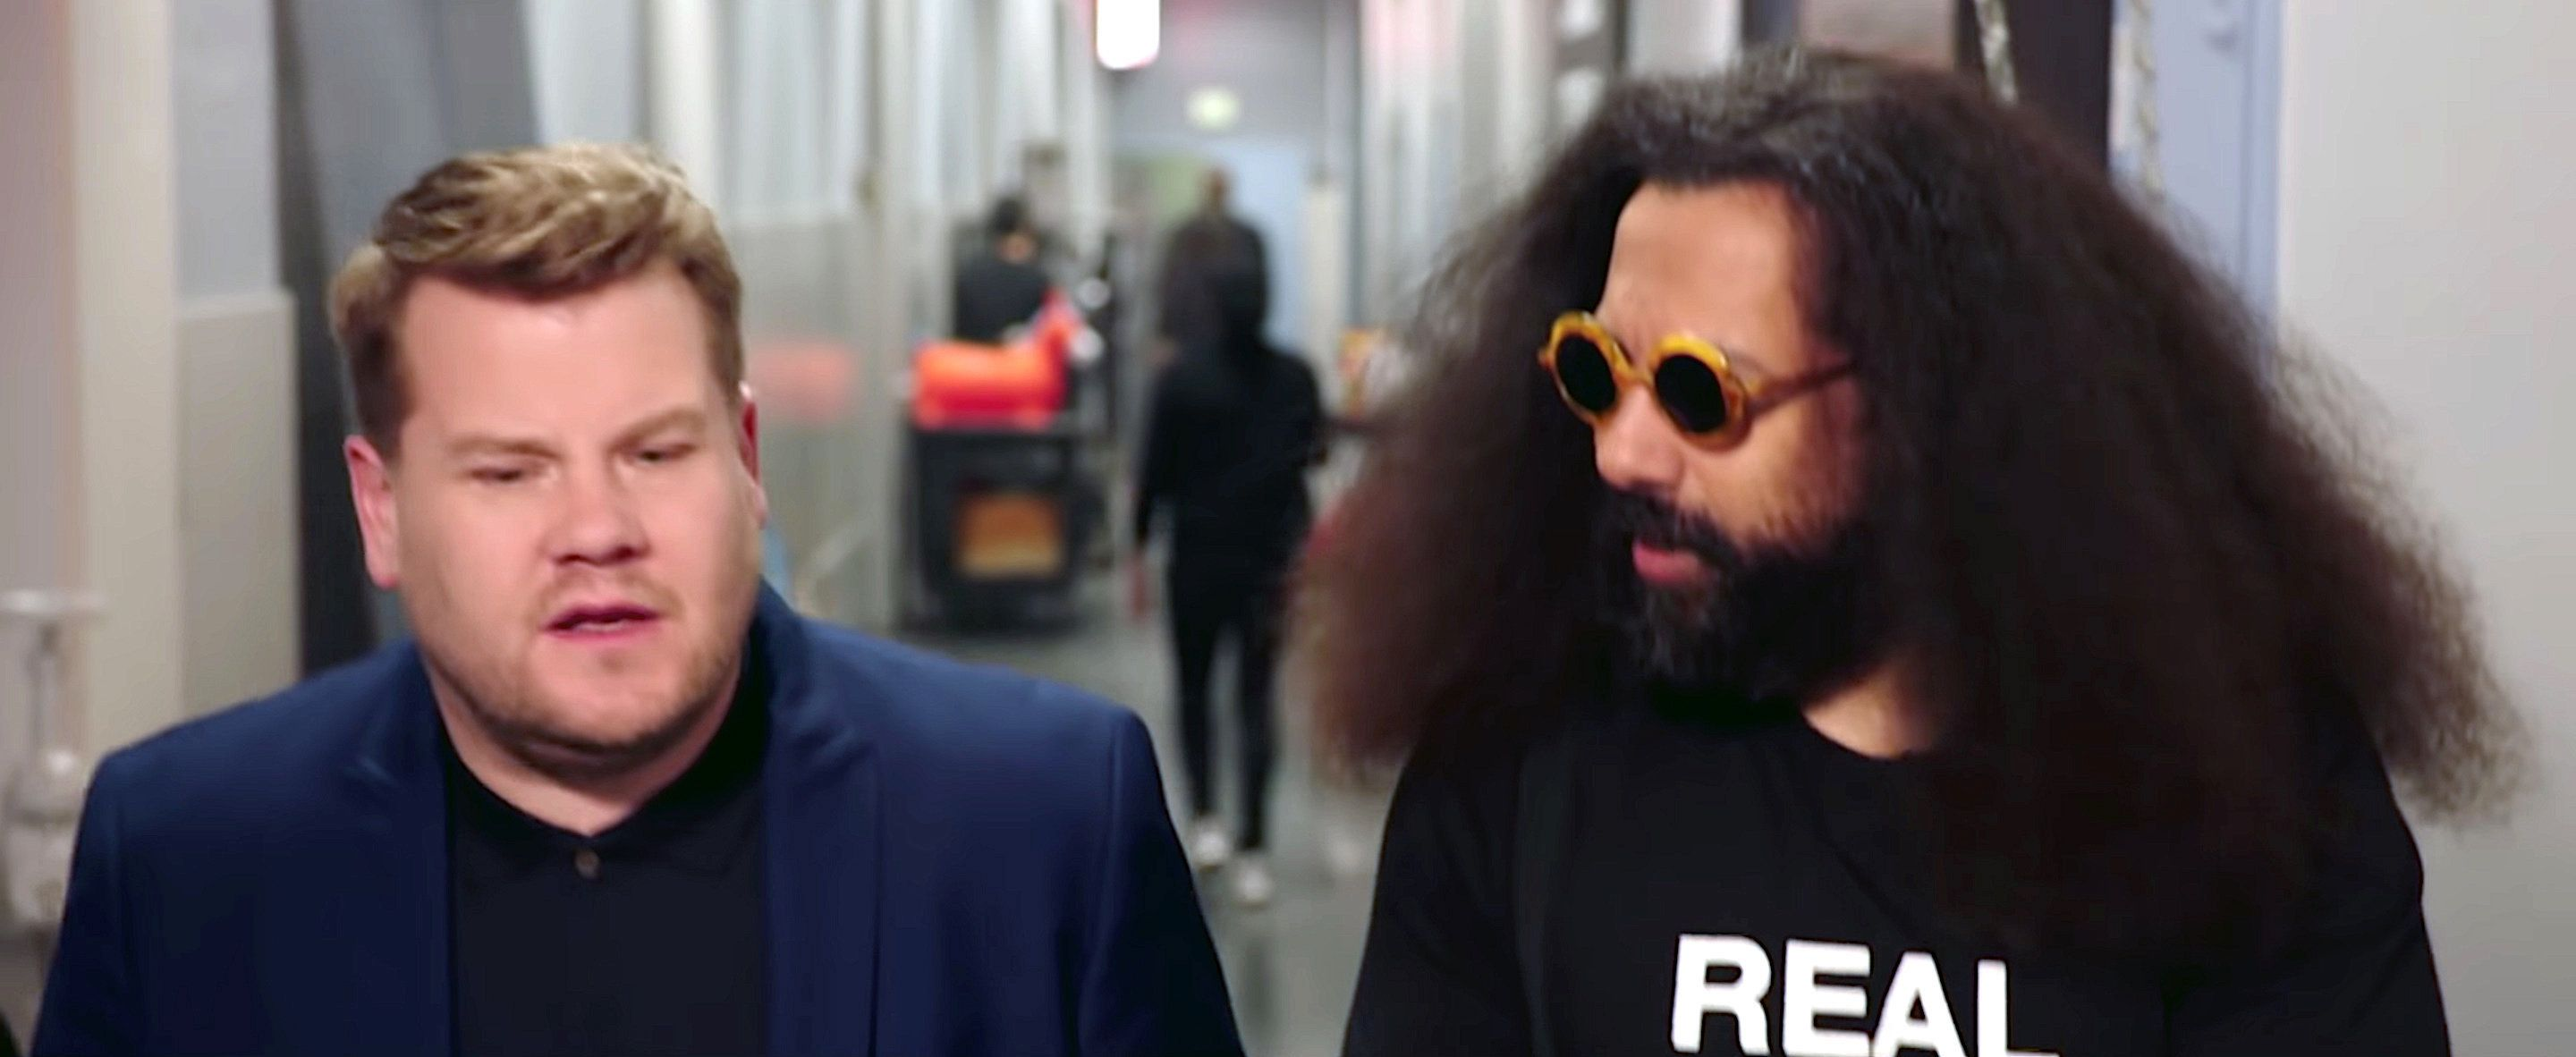 James Corden and Reggie Watts